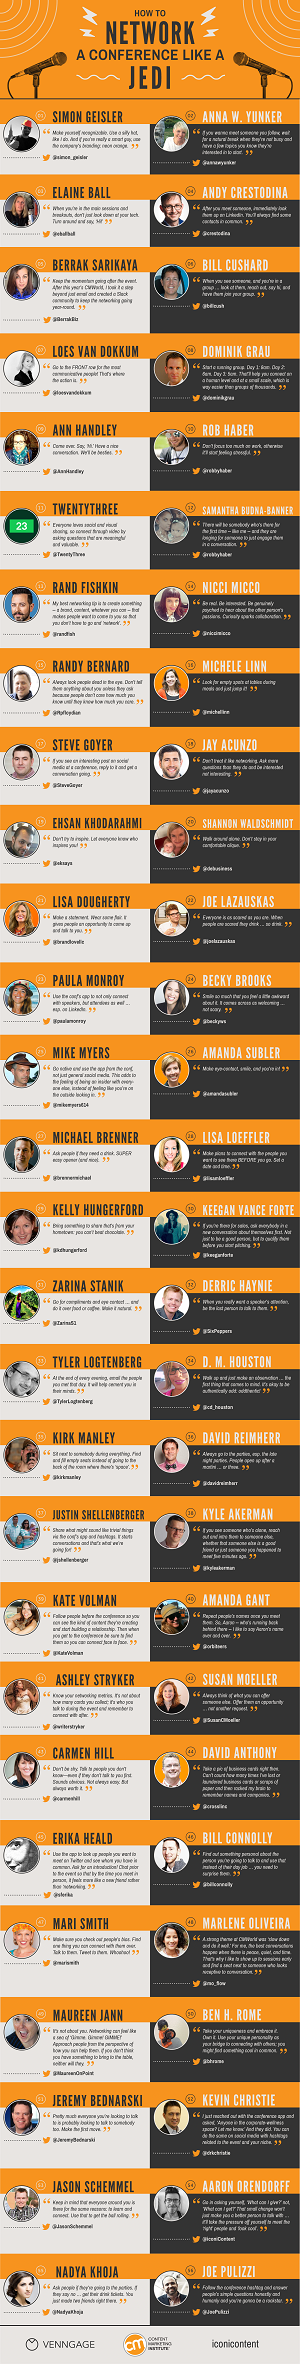 How to Network a Conference (Infographic)